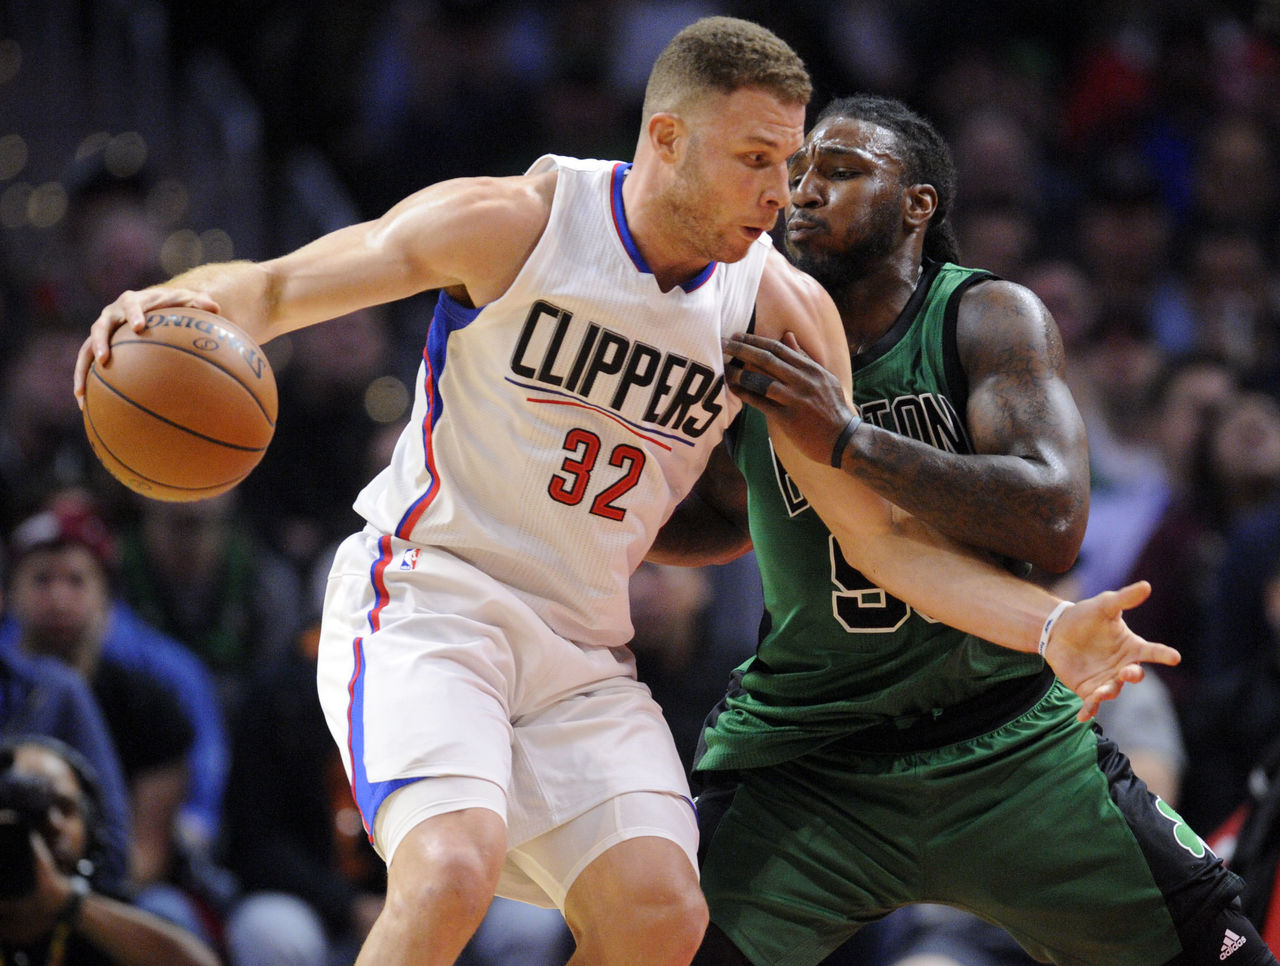 Cropped_2017-03-07t064621z_1455563143_nocid_rtrmadp_3_nba-boston-celtics-at-los-angeles-clippers